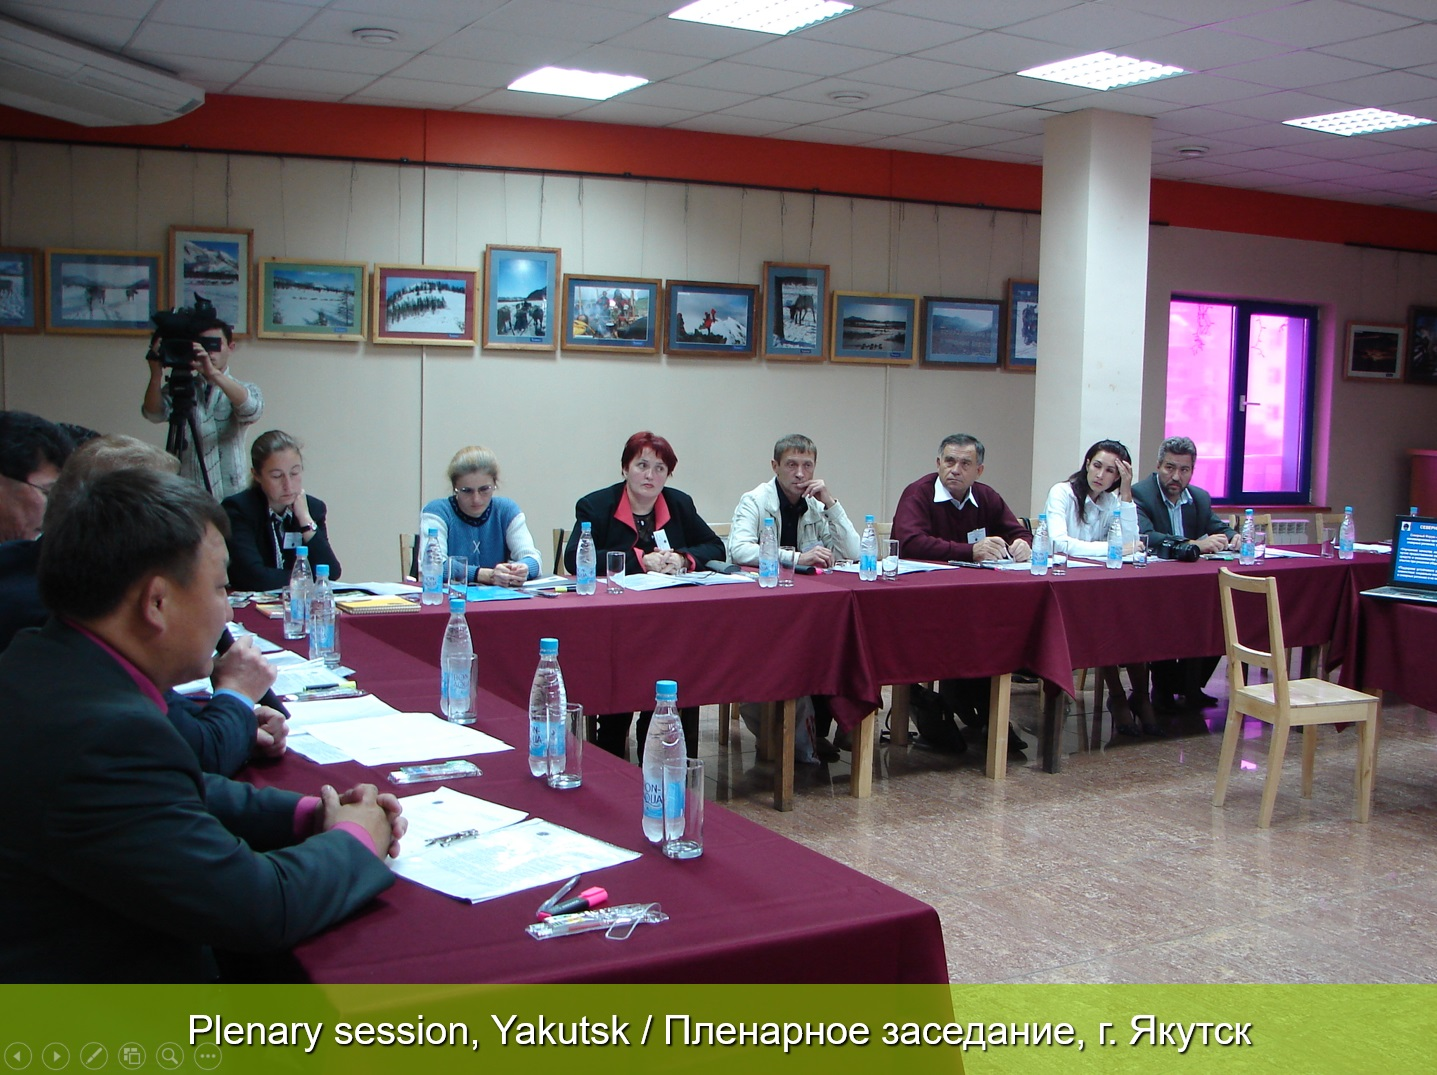 Plenary session Yakutsk